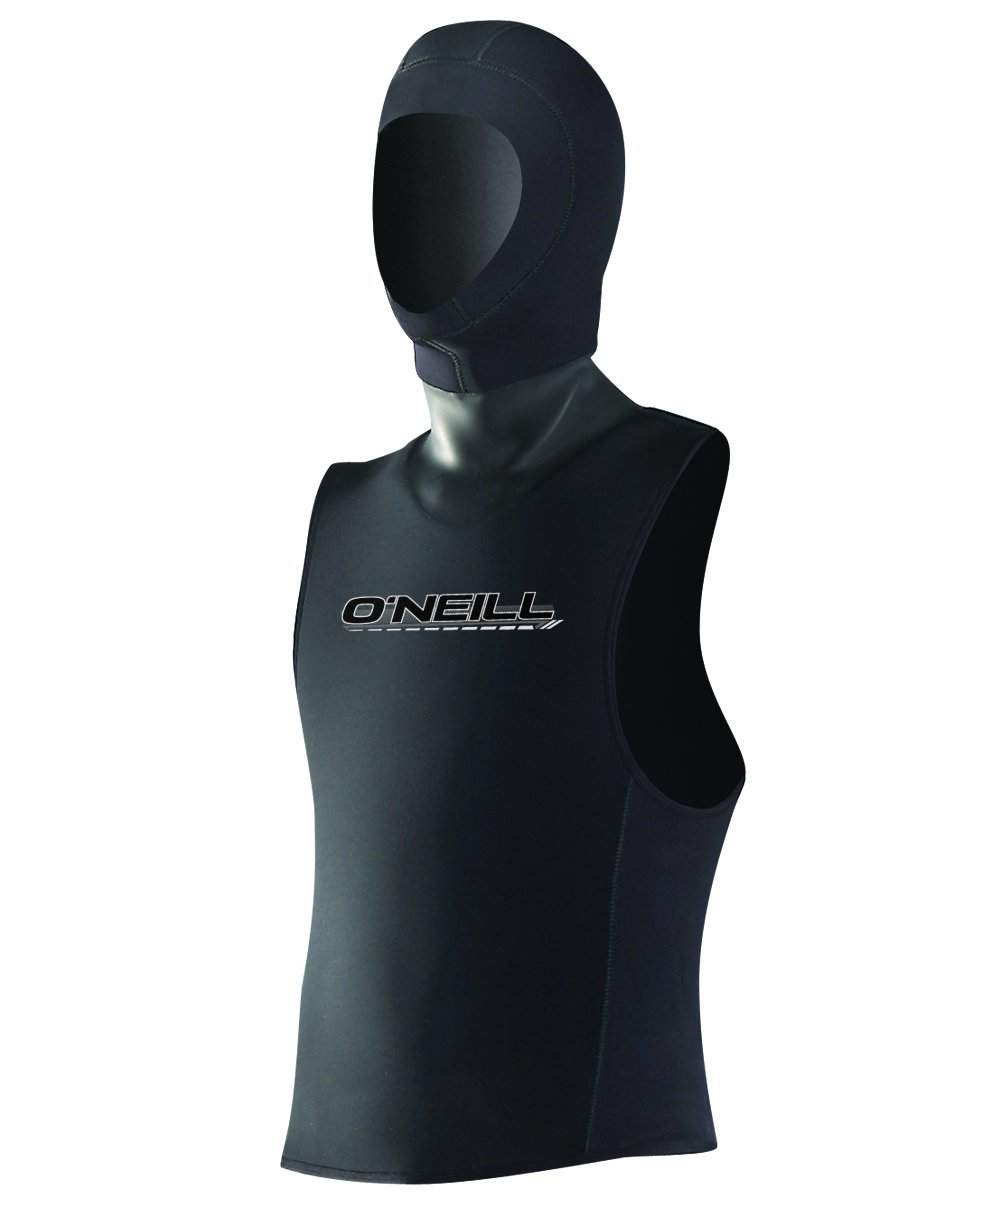 O'Neill Wetsuits Mens 3 mm Vest w/Hood, Black, Small by O'Neill Wetsuits